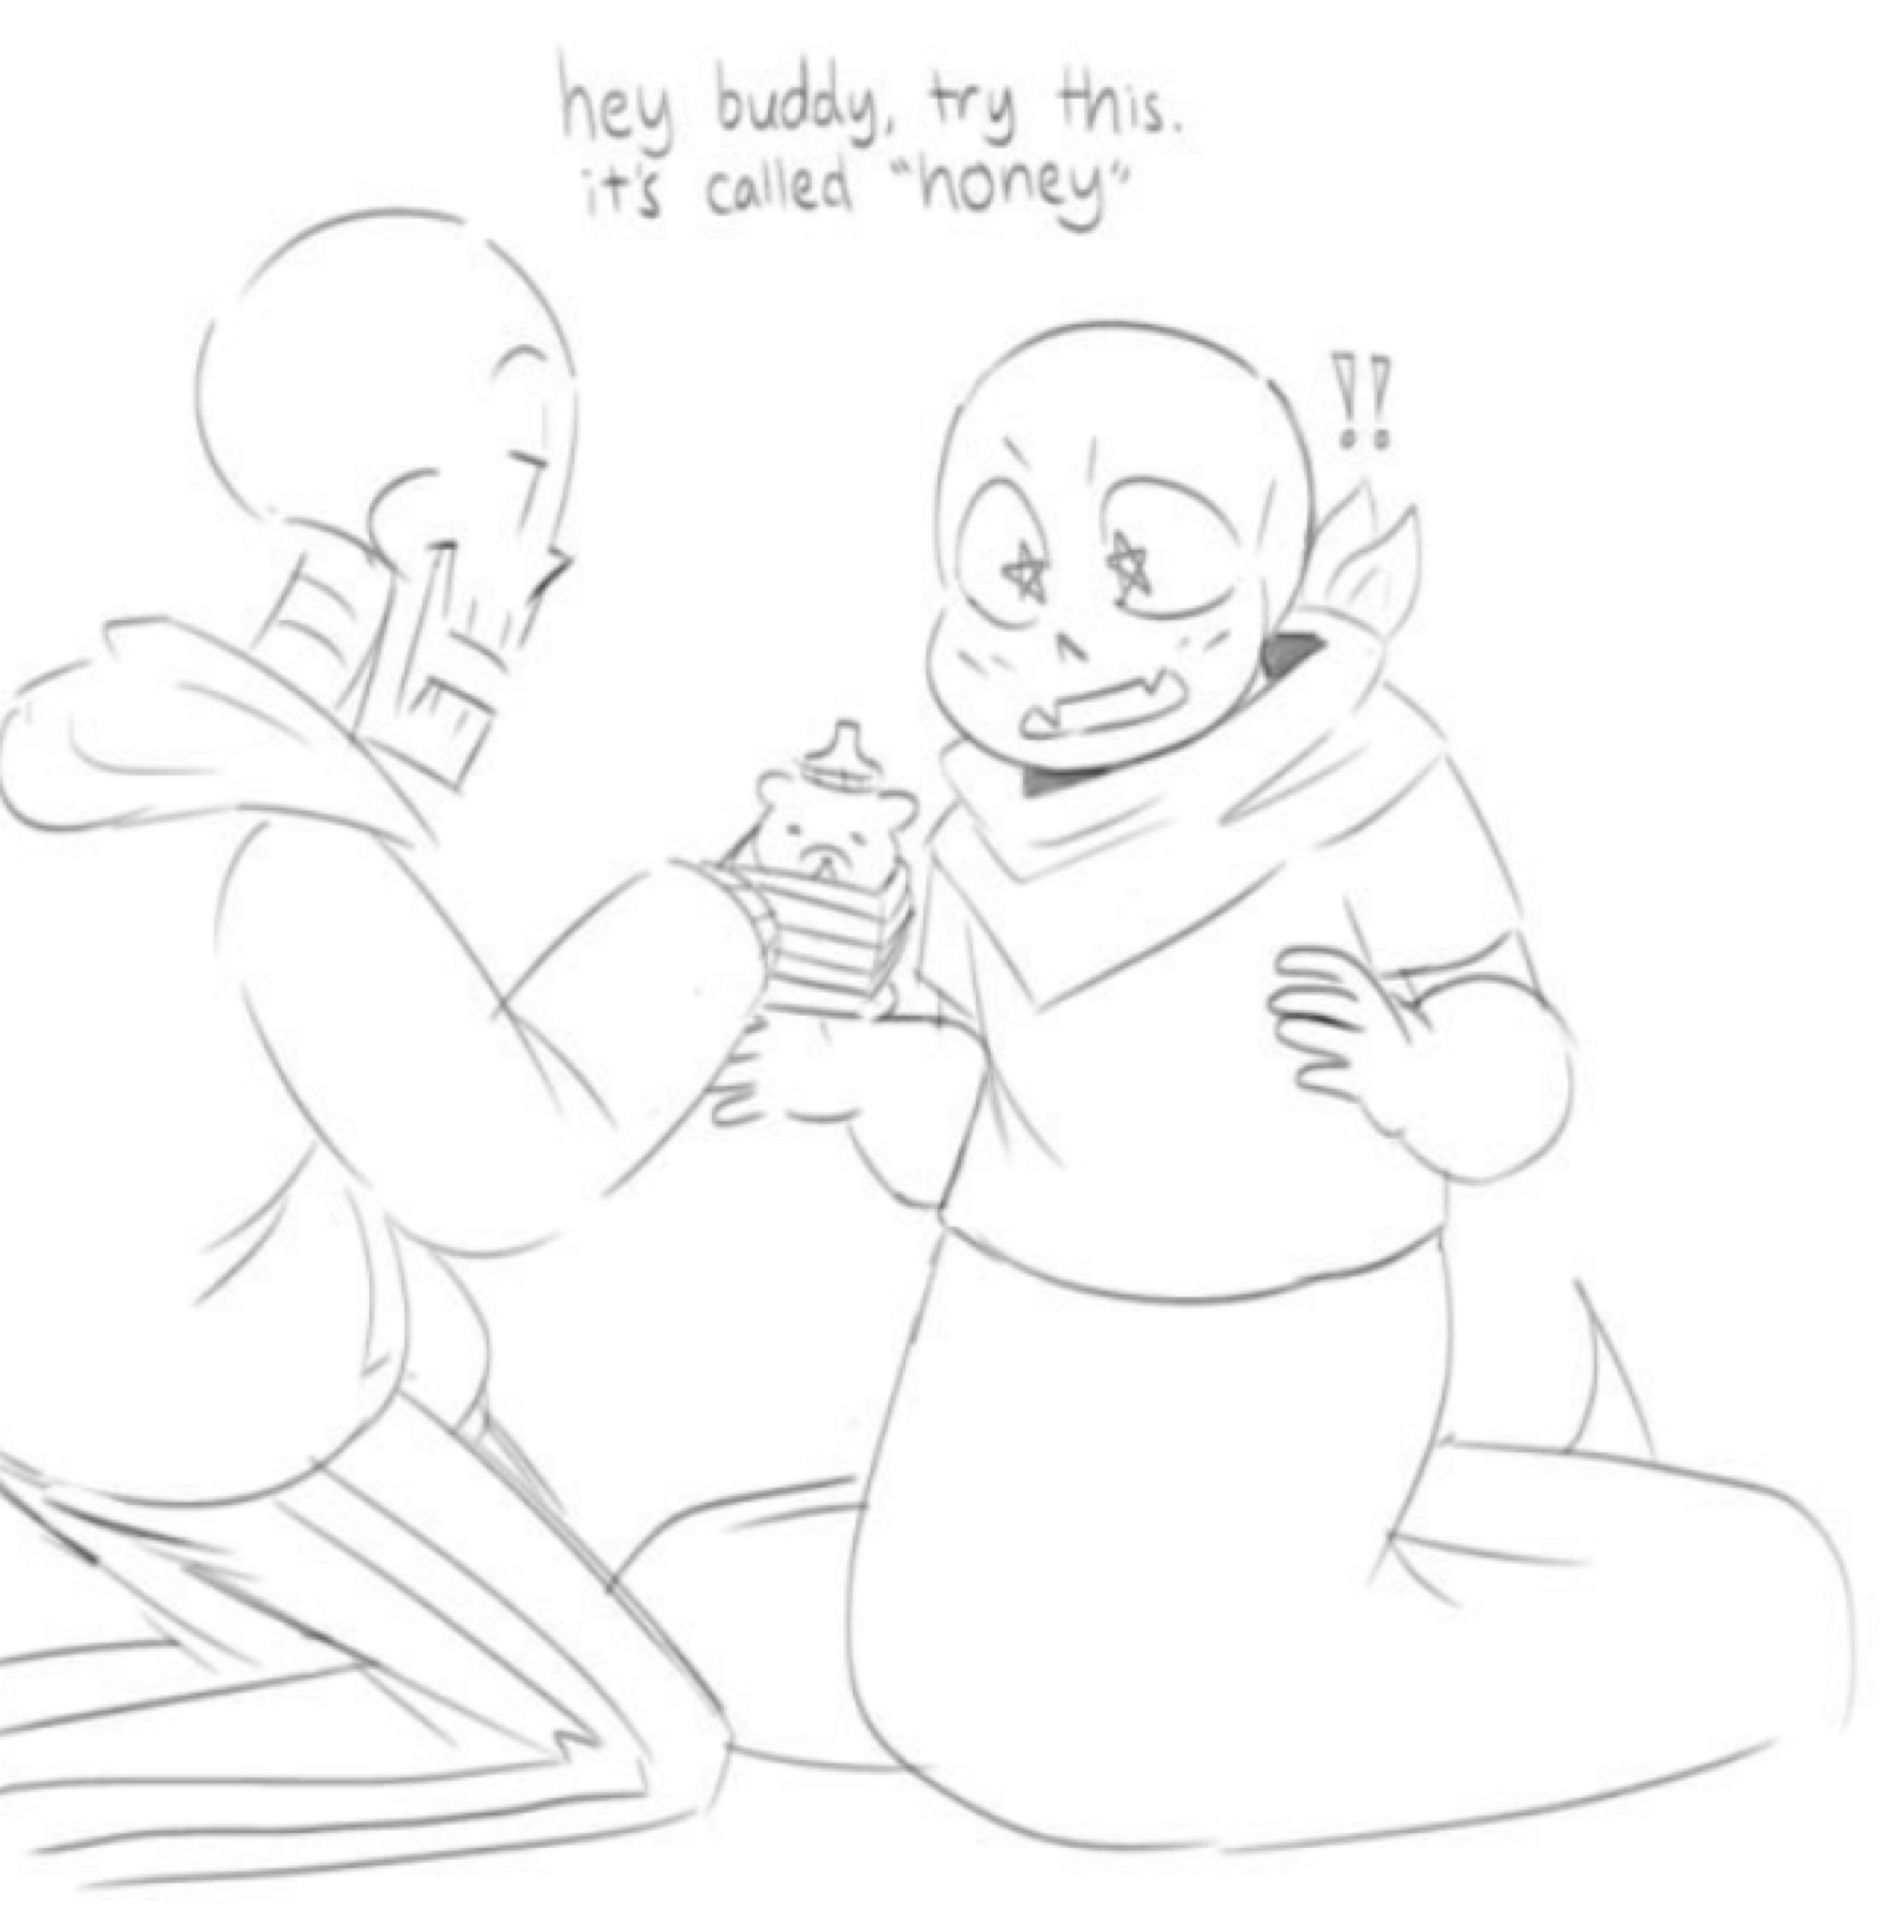 #wattpad #de-todo RP any undertale ship from any Au! (literate